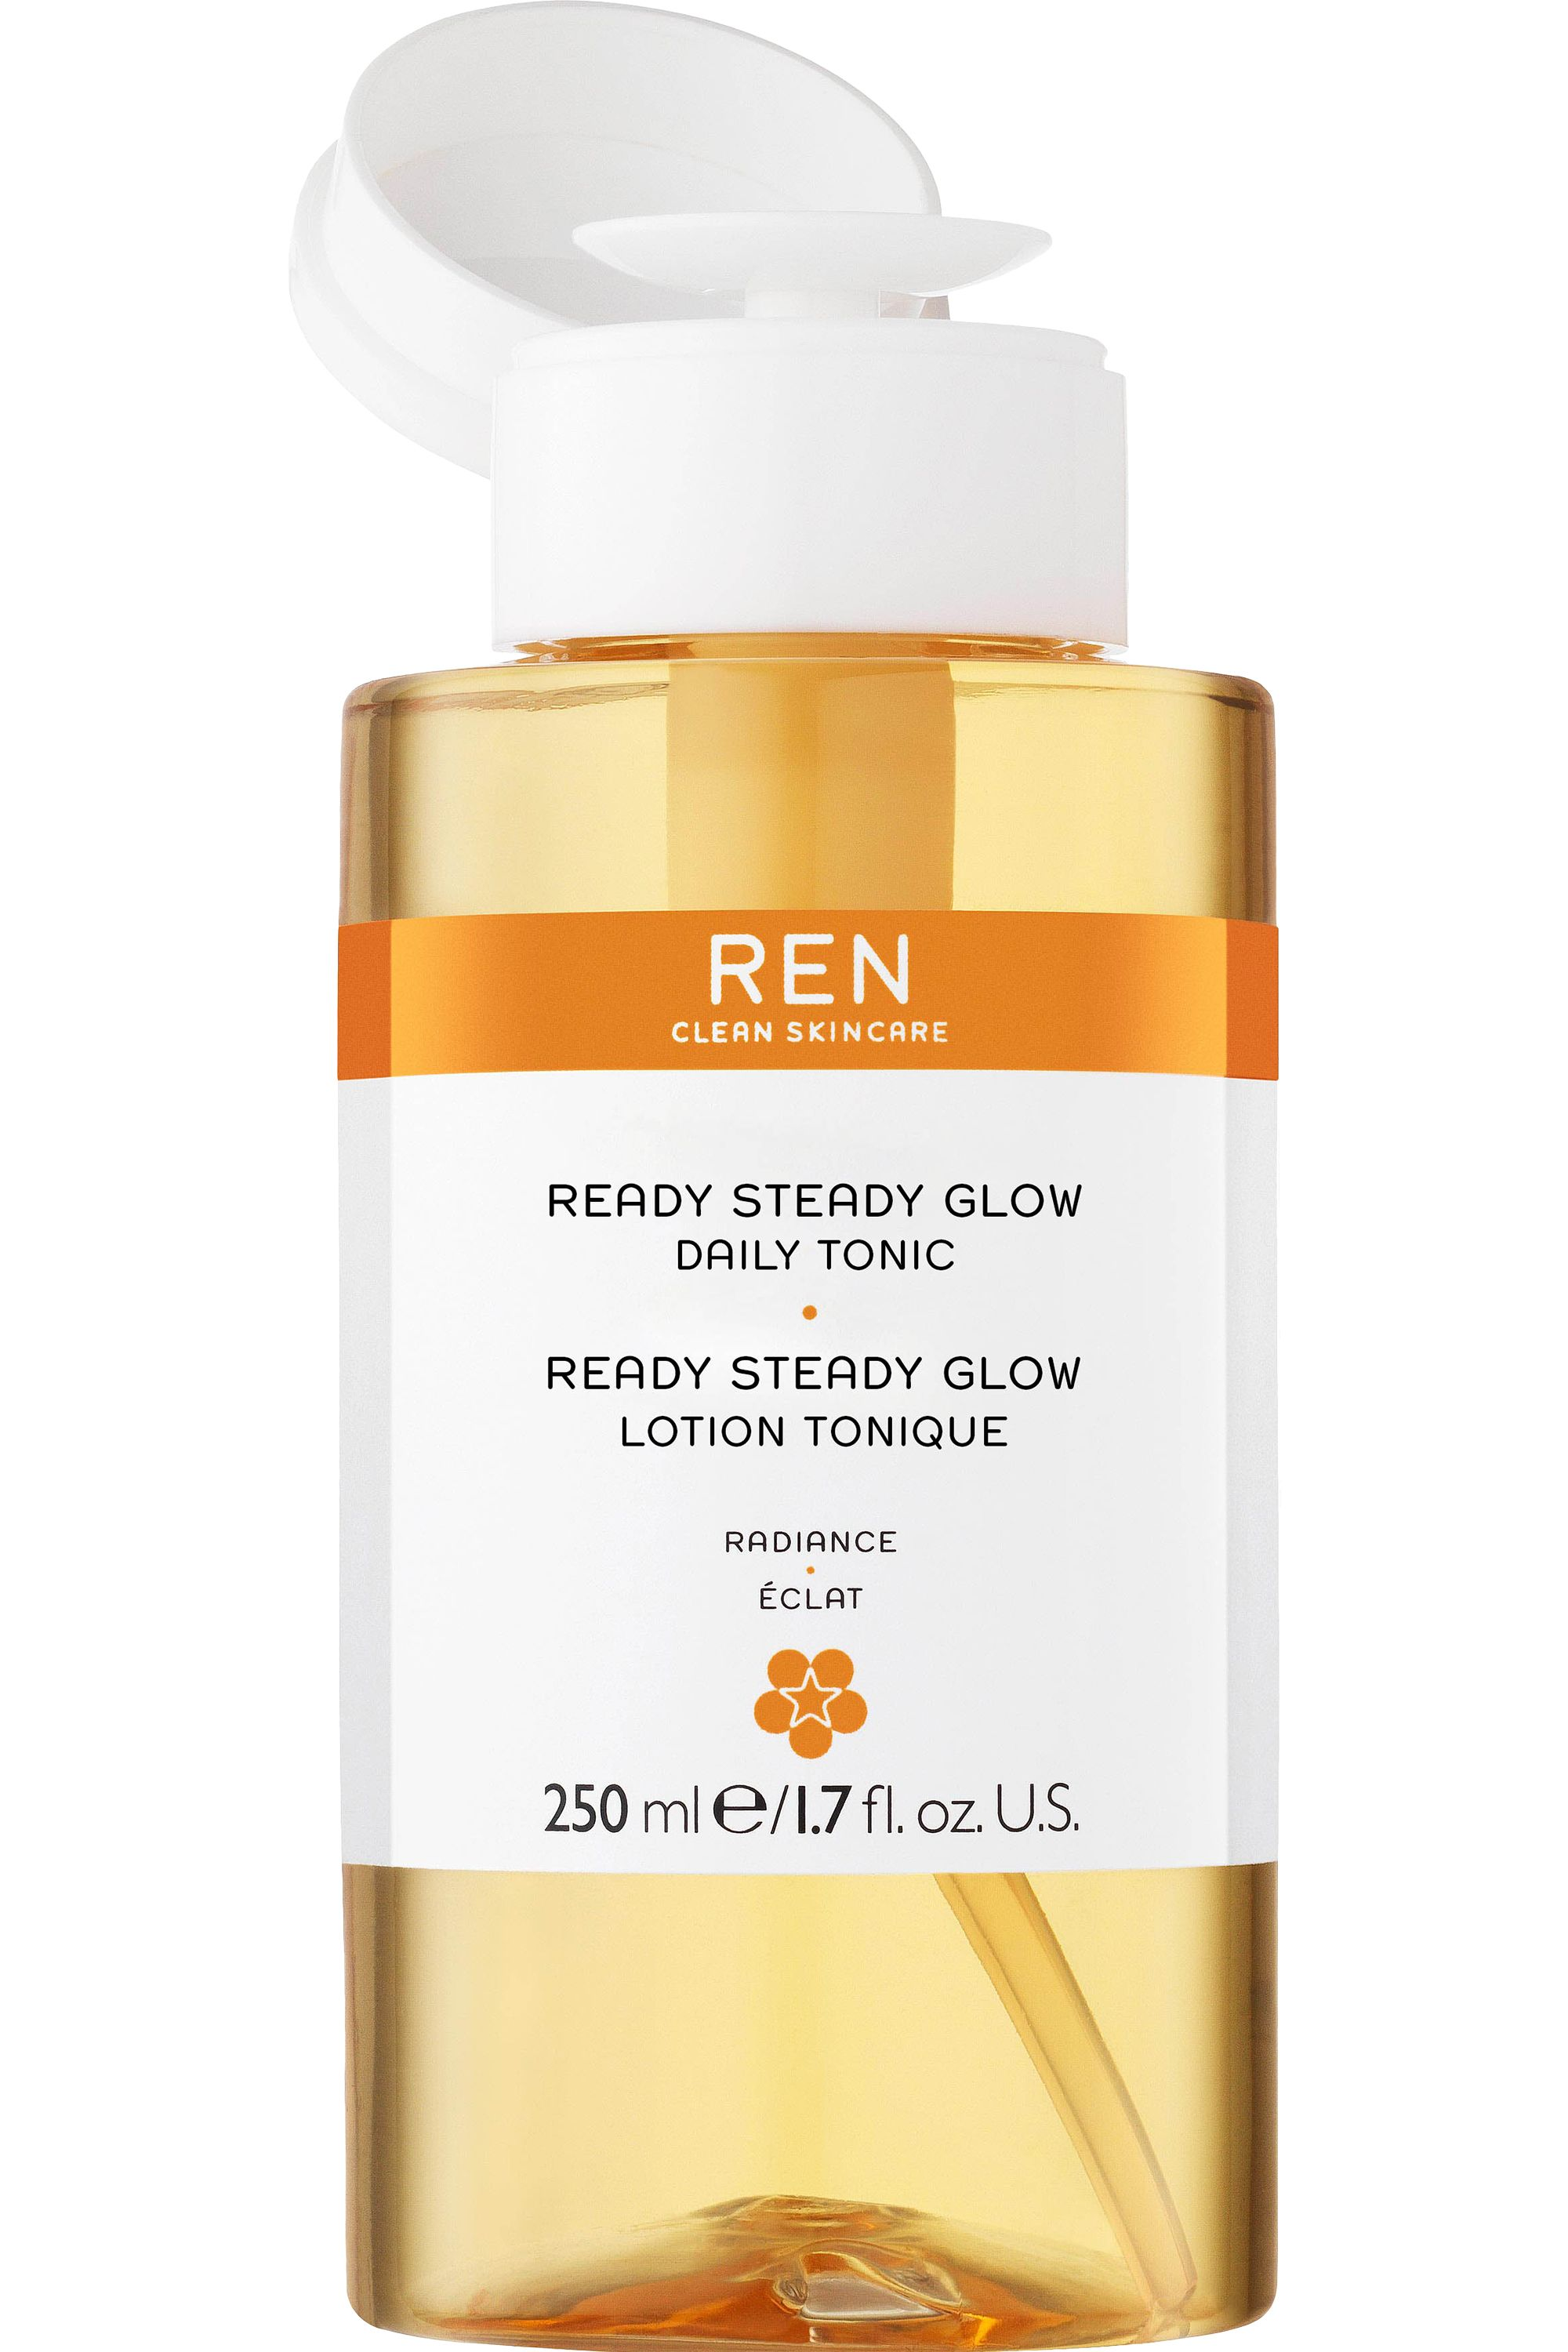 Blissim : REN - Lotion tonique Radiance Ready Steady Glow AHA - Lotion tonique Radiance Ready Steady Glow AHA